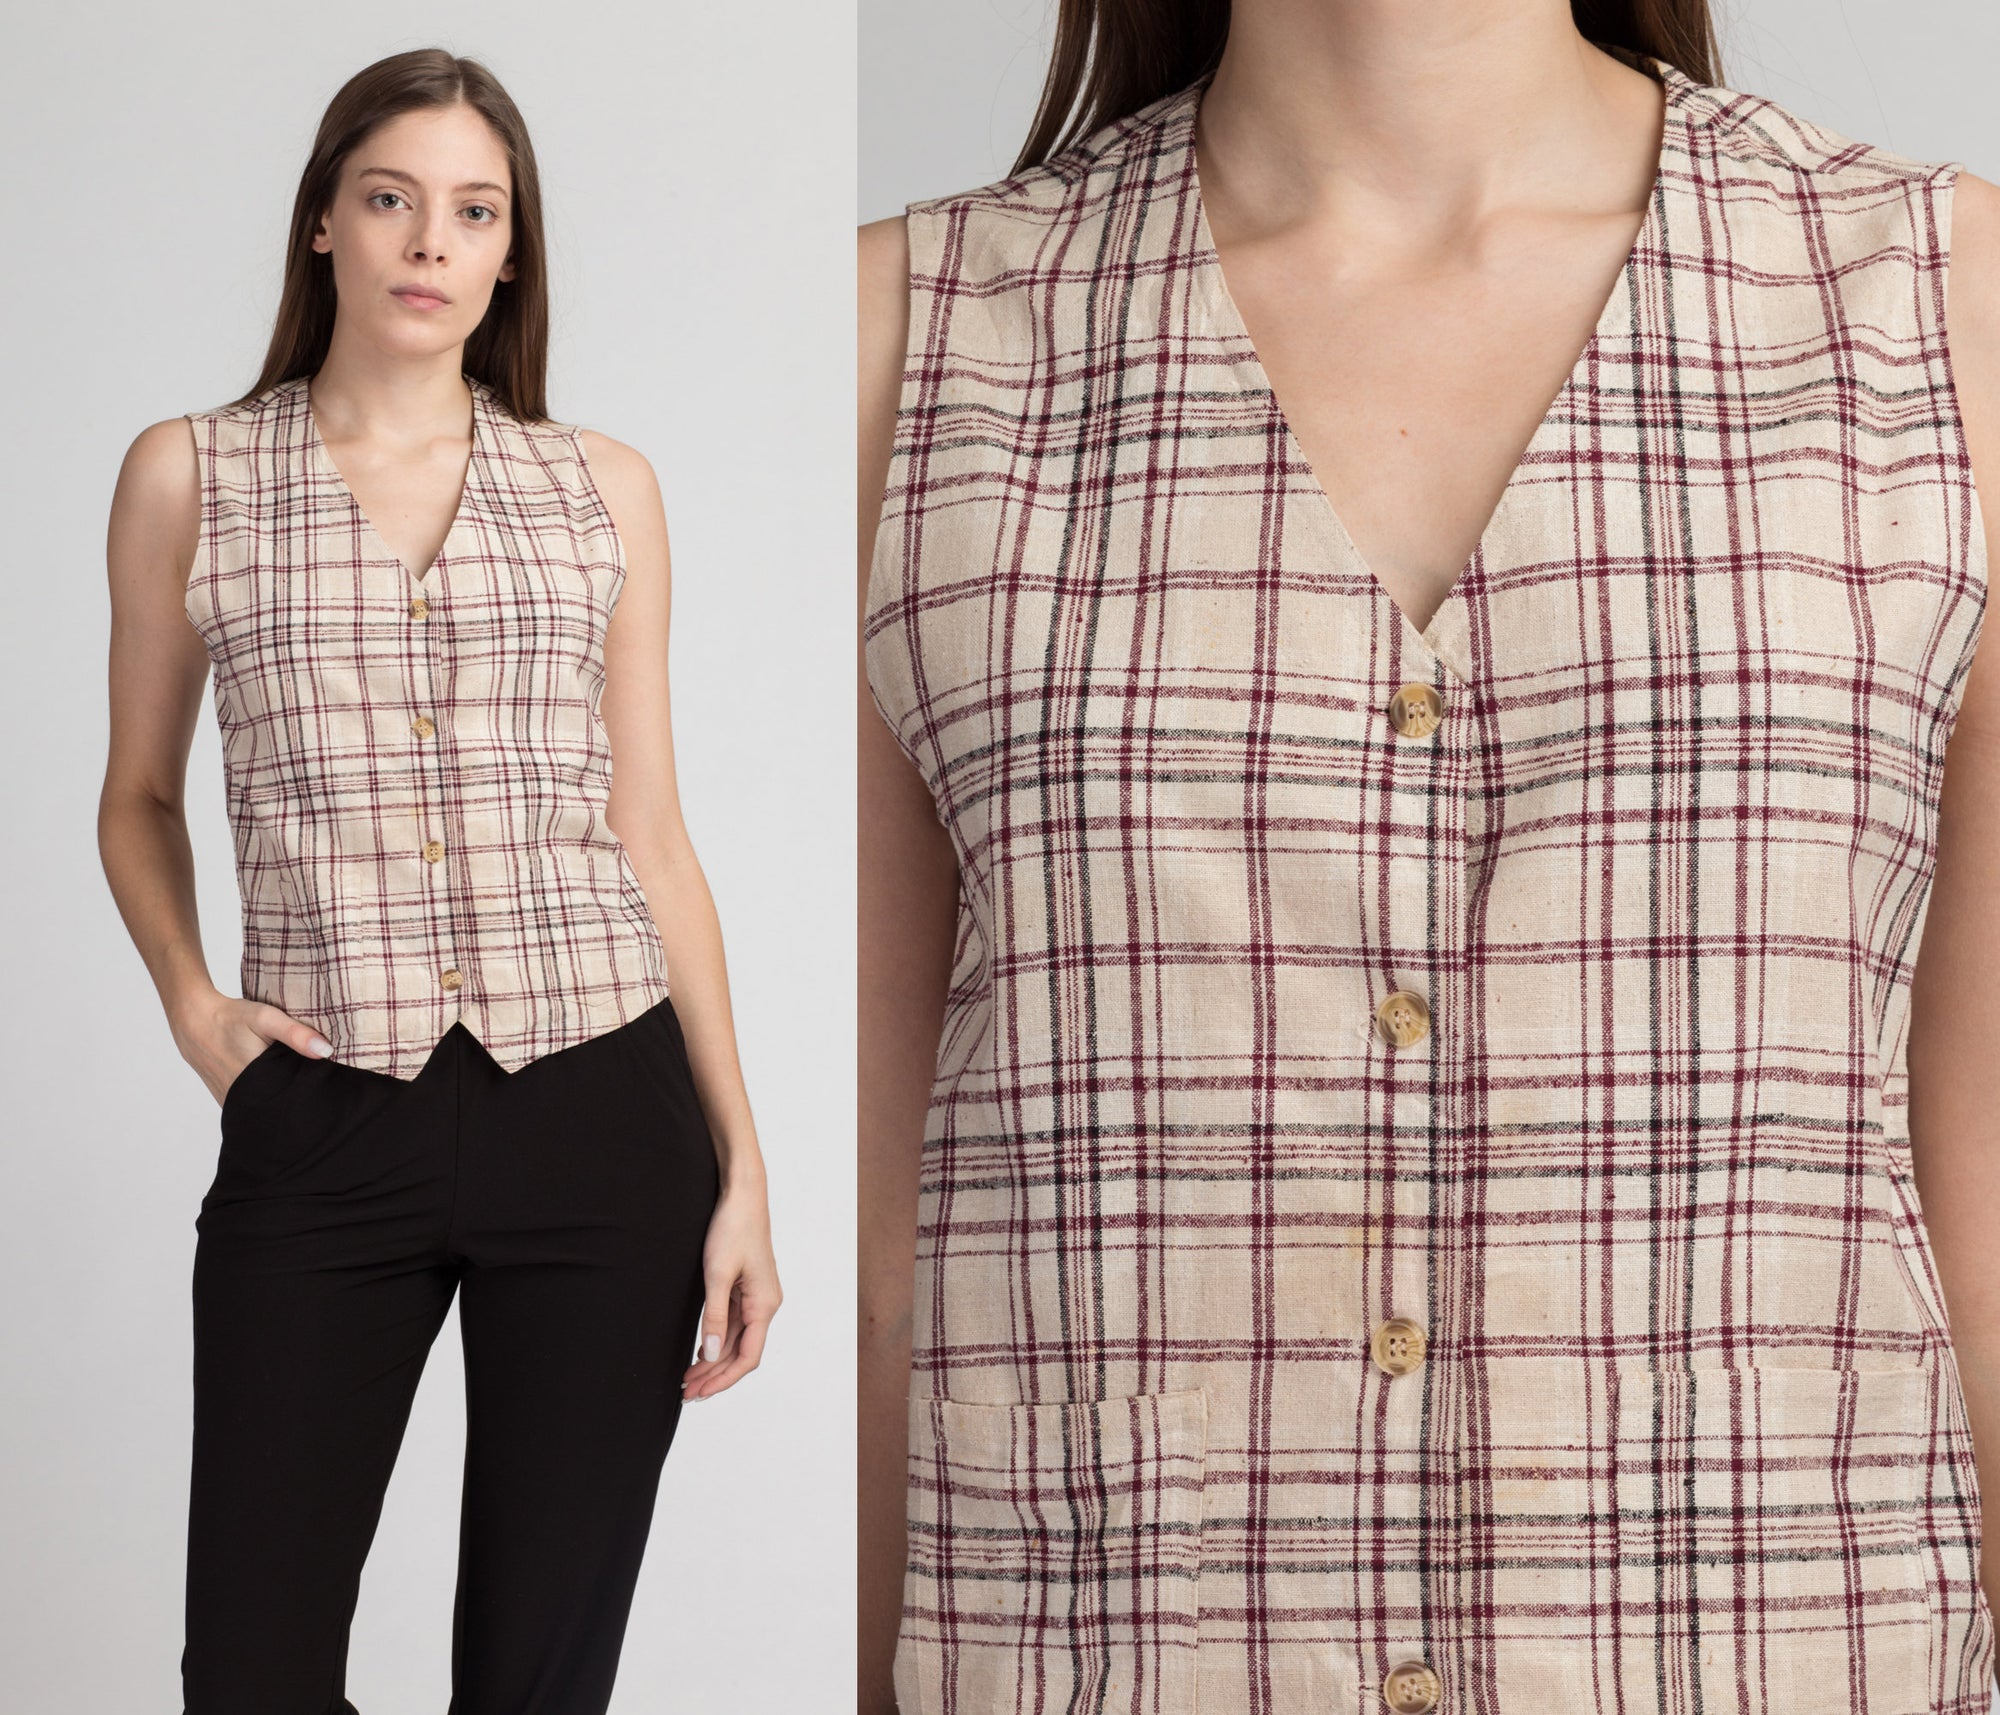 90s Plaid Raw Silk Vest - Small to Medium | Vintage Button Up Sleeveless Crop Top